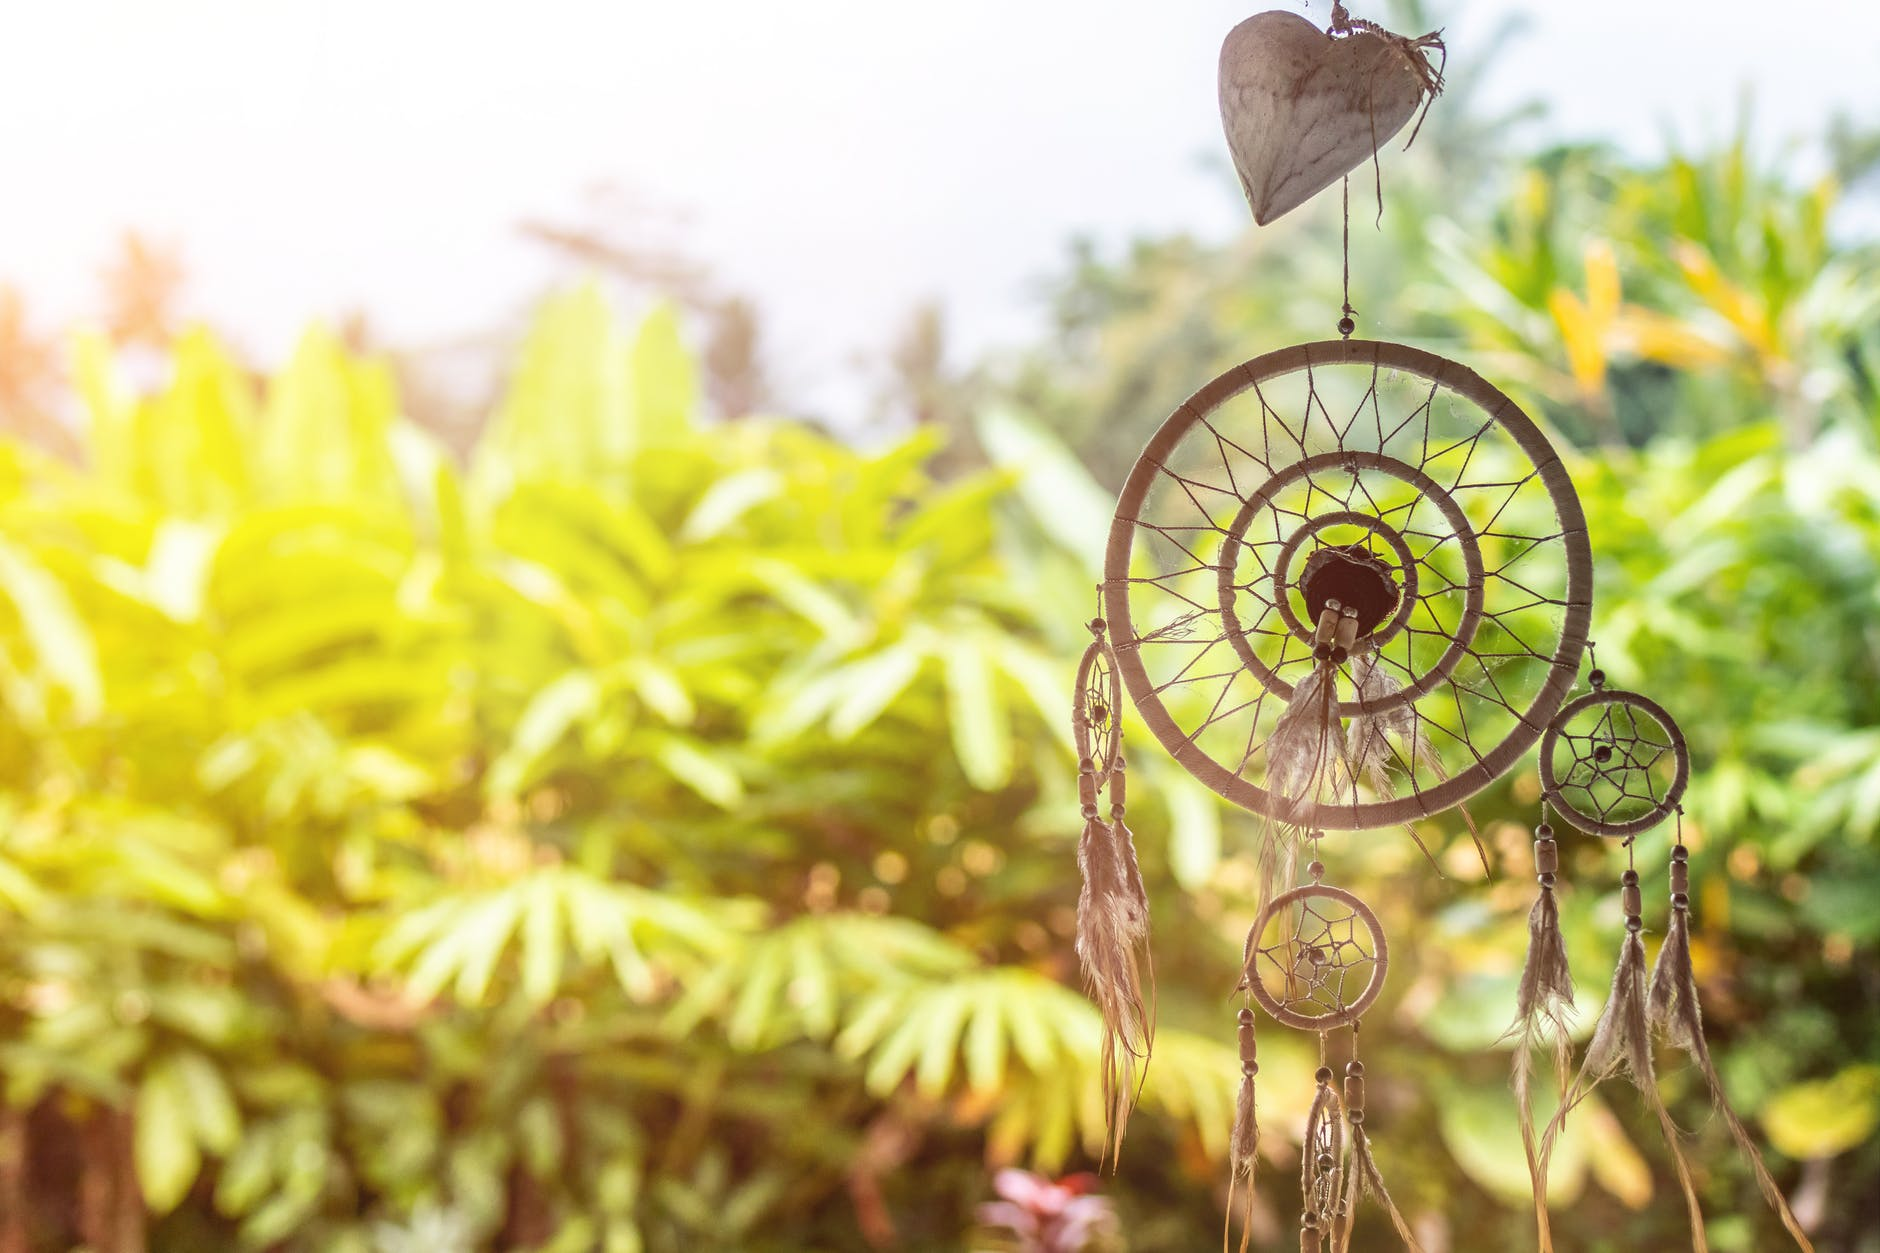 dreamcatcher near plants